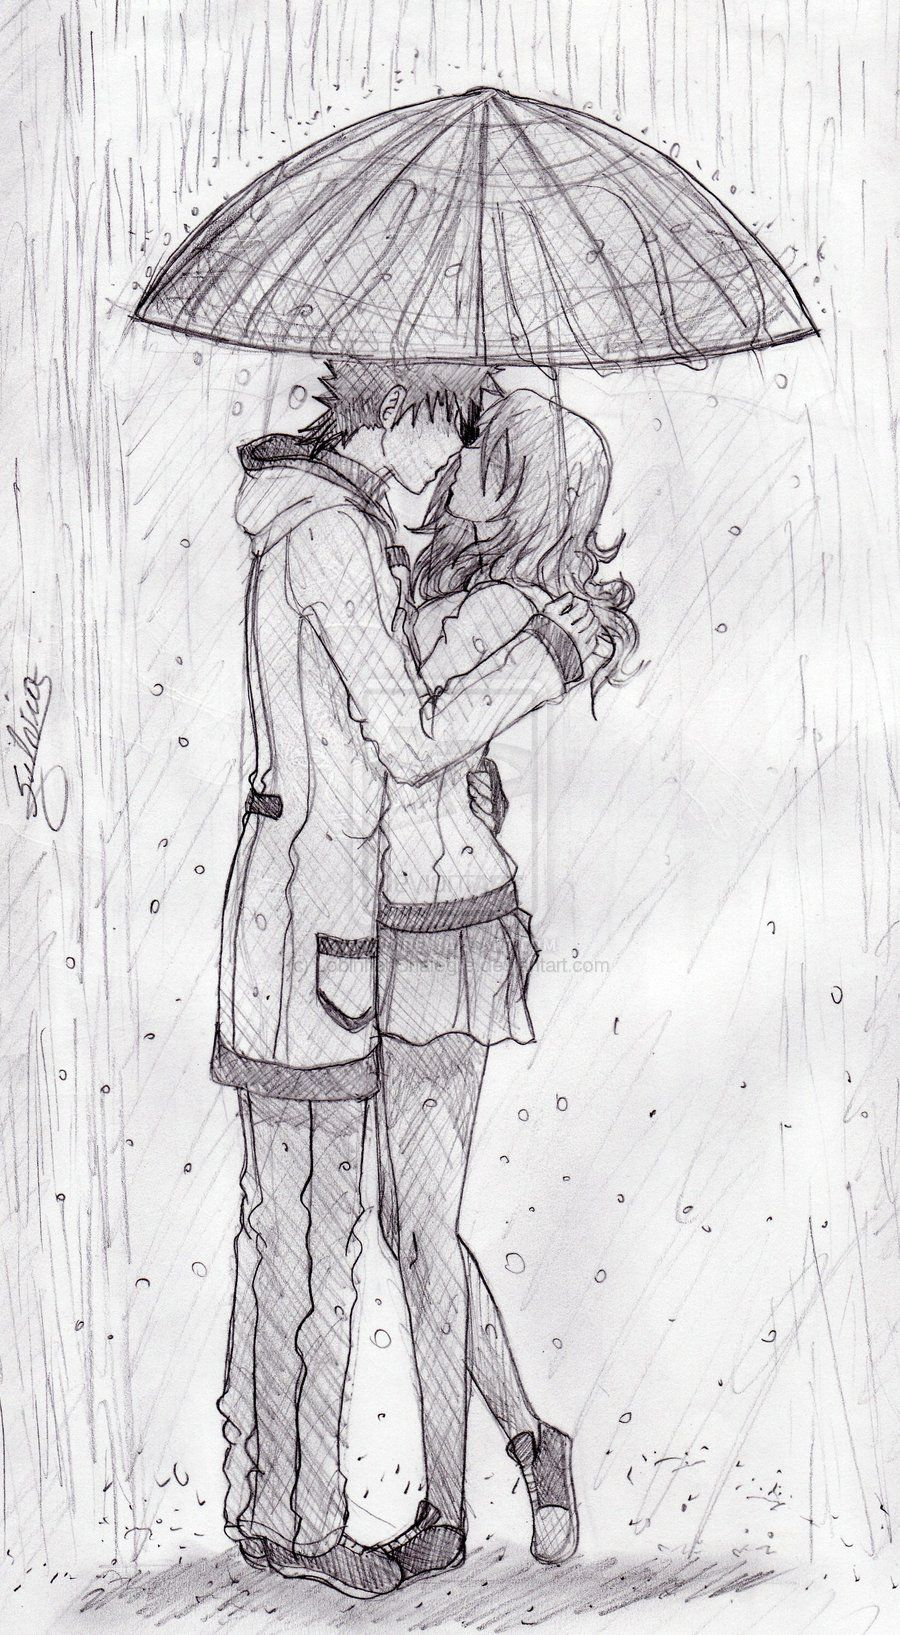 Kiss in the rain drawing rainy day drawing drawing rain drawing tips kissing